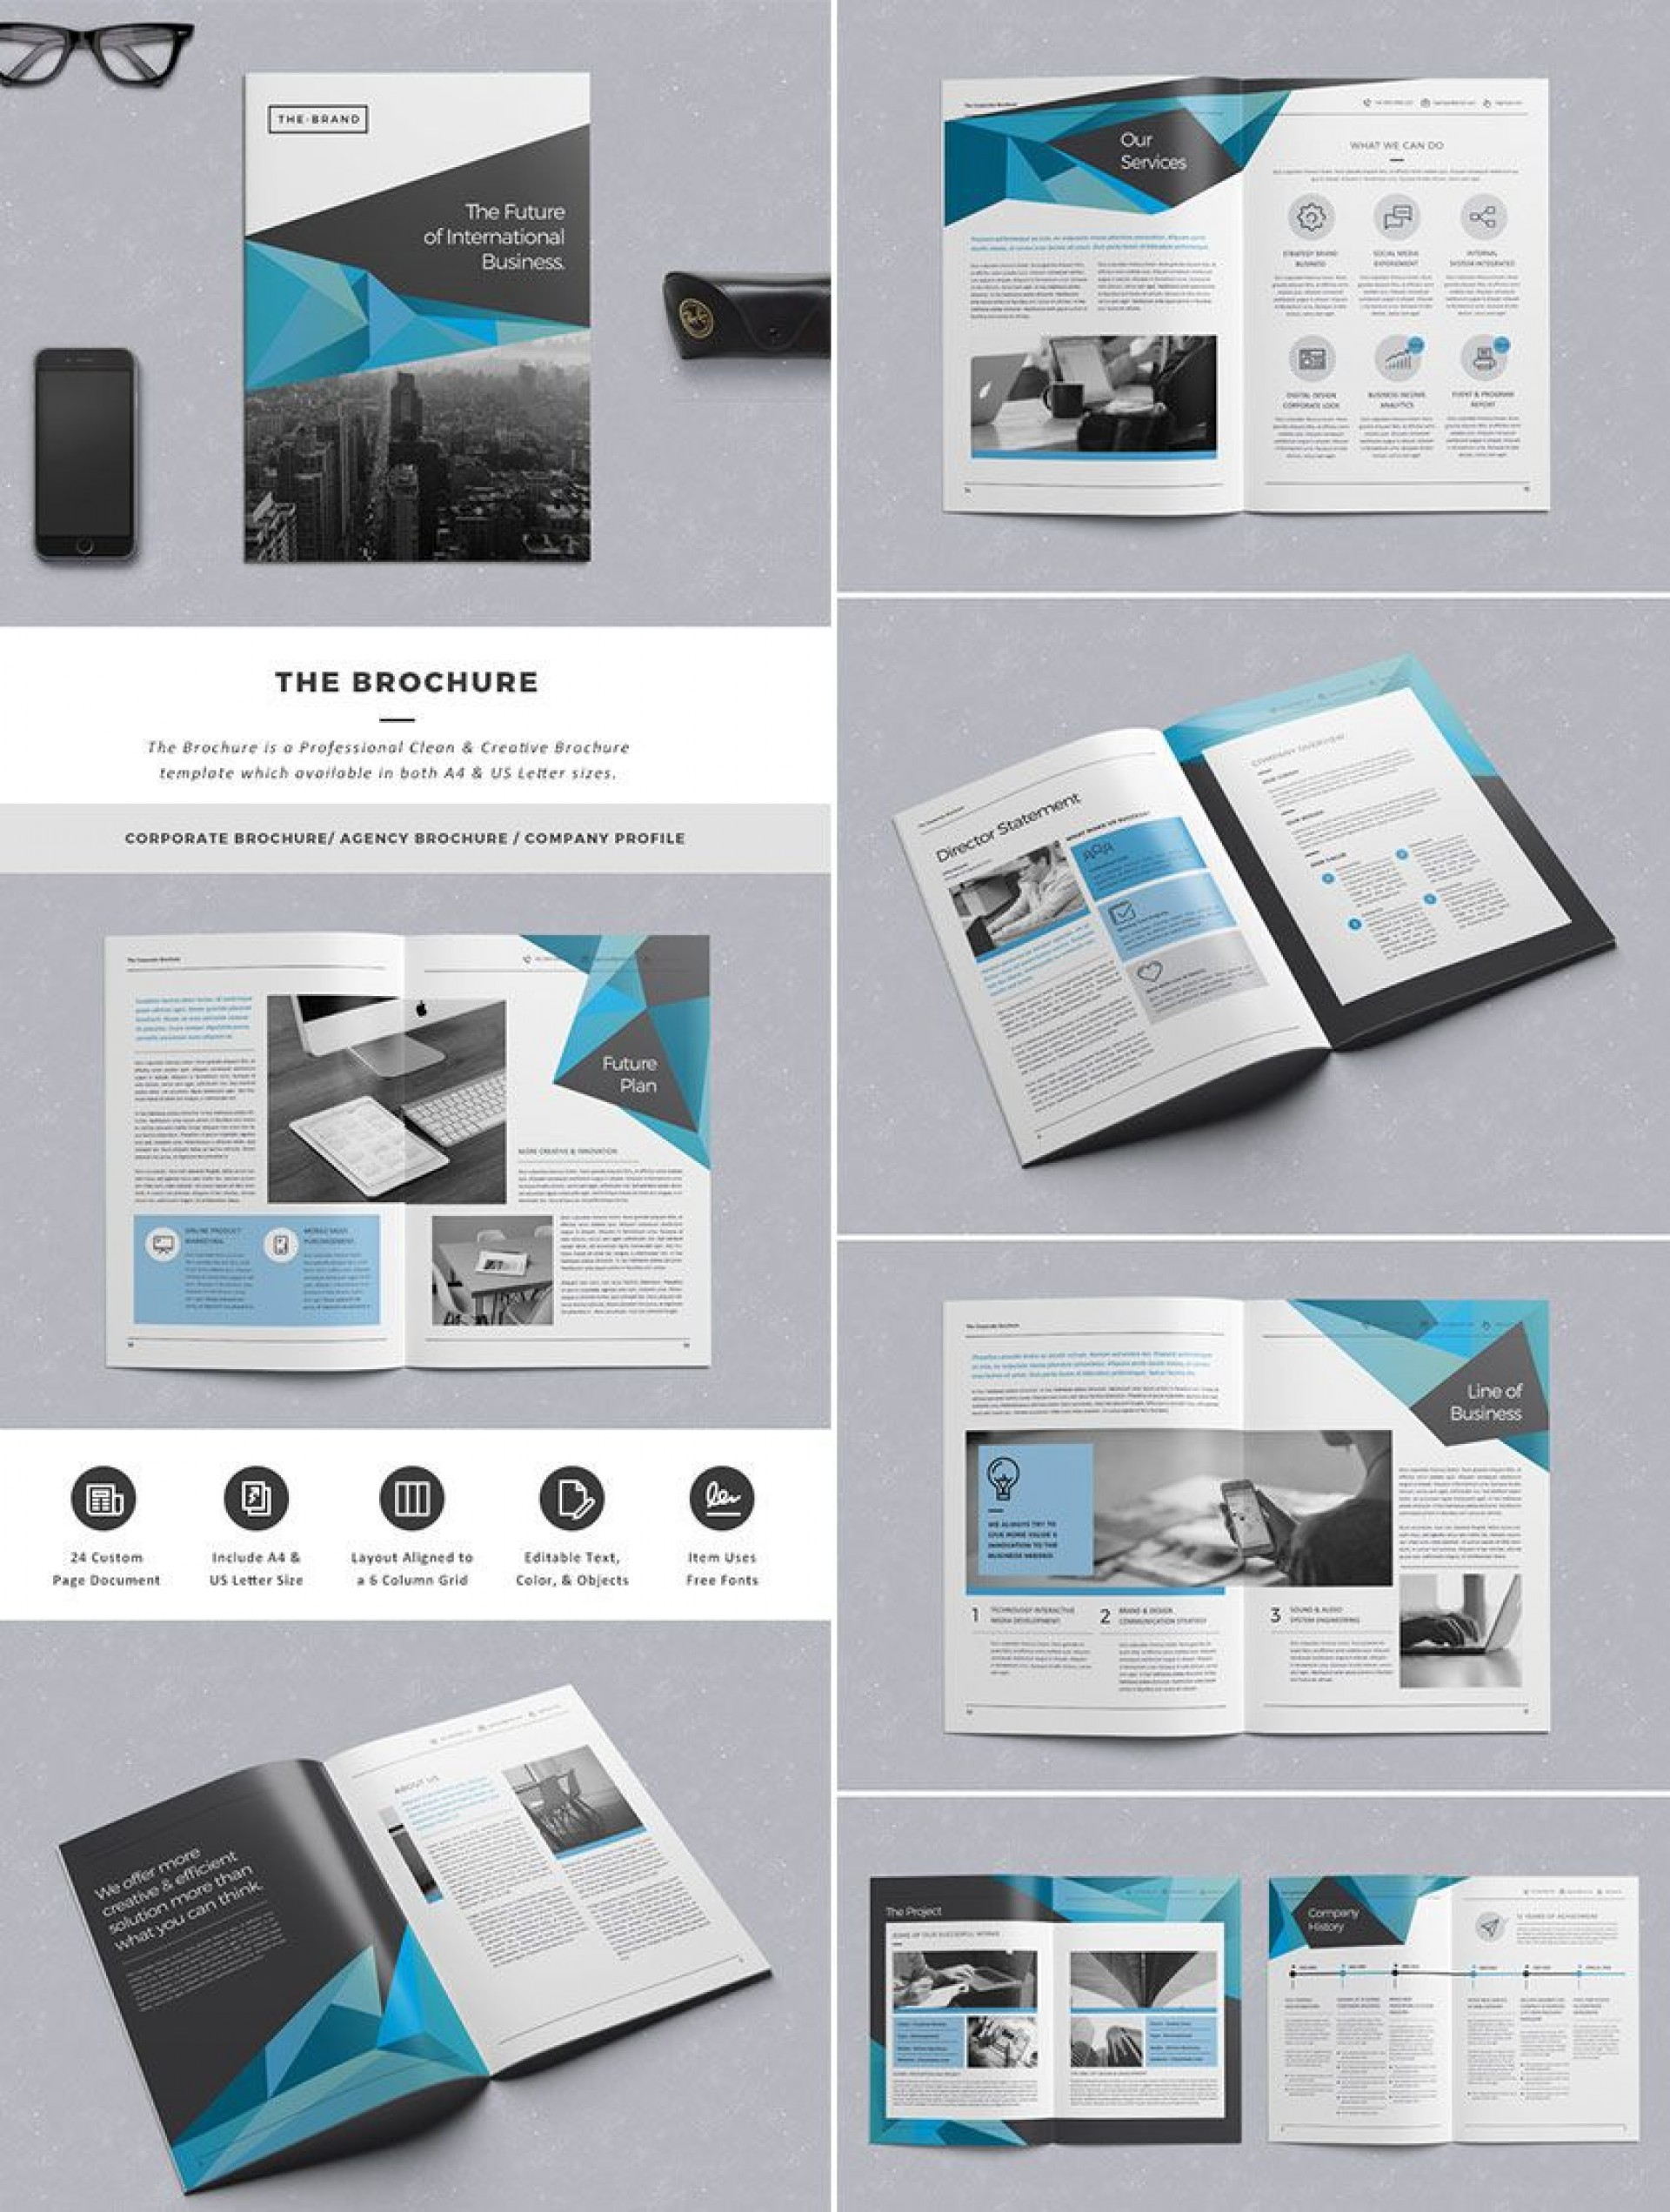 004 Incredible Adobe Indesign Brochure Template Free Download Image 1920